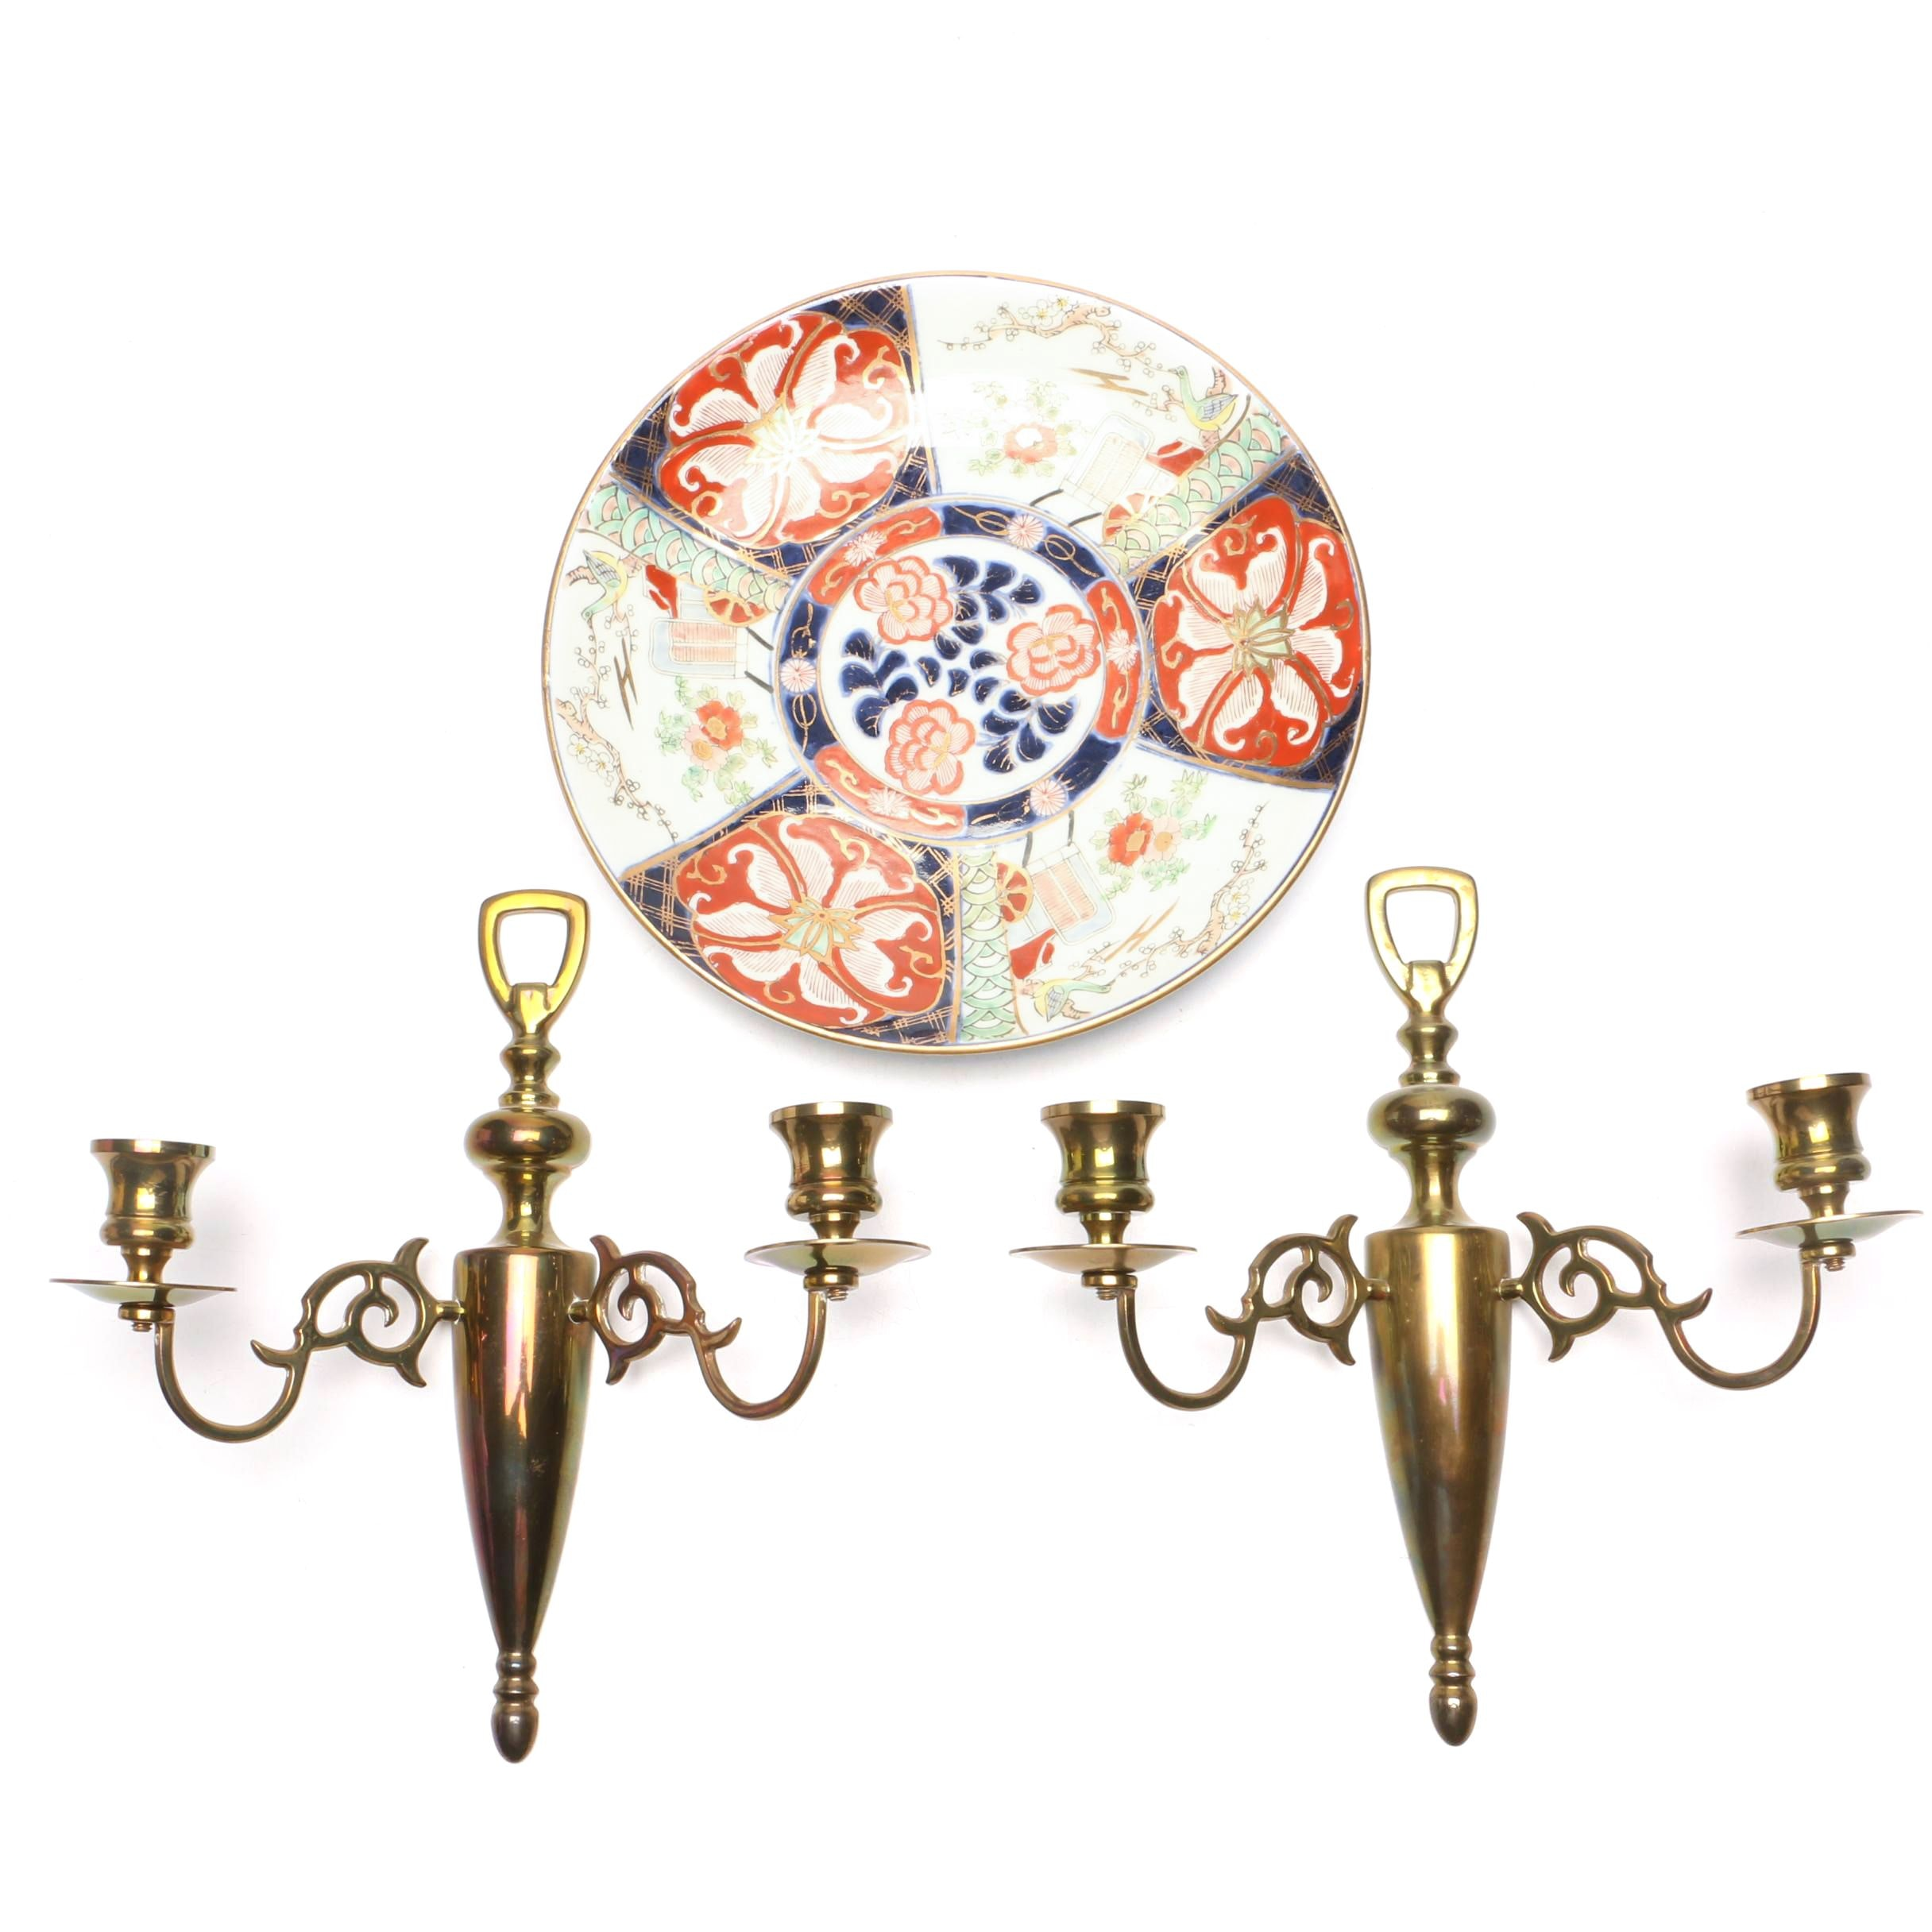 Japanese Artia Porcelain Plate with Brass Candle Sconces